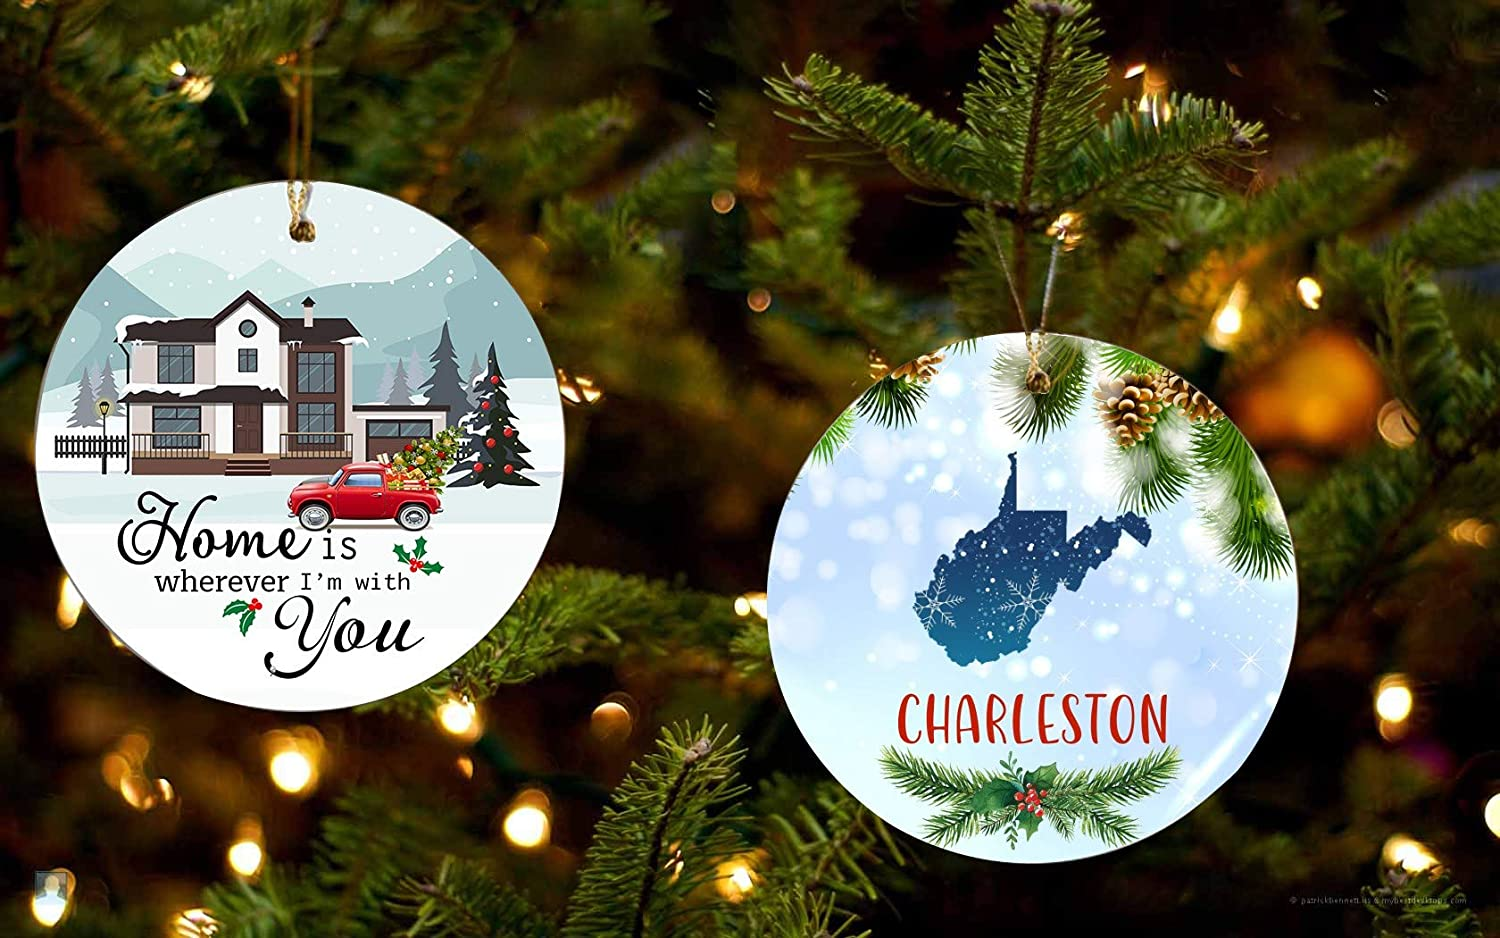 New Home Ornament 2019 1st Christmas - Home Is Wherever I'm With You Charleston West Virginia State - Christmas Gift Ideas For Wife, Husband - Set Of Two Ornaments 3